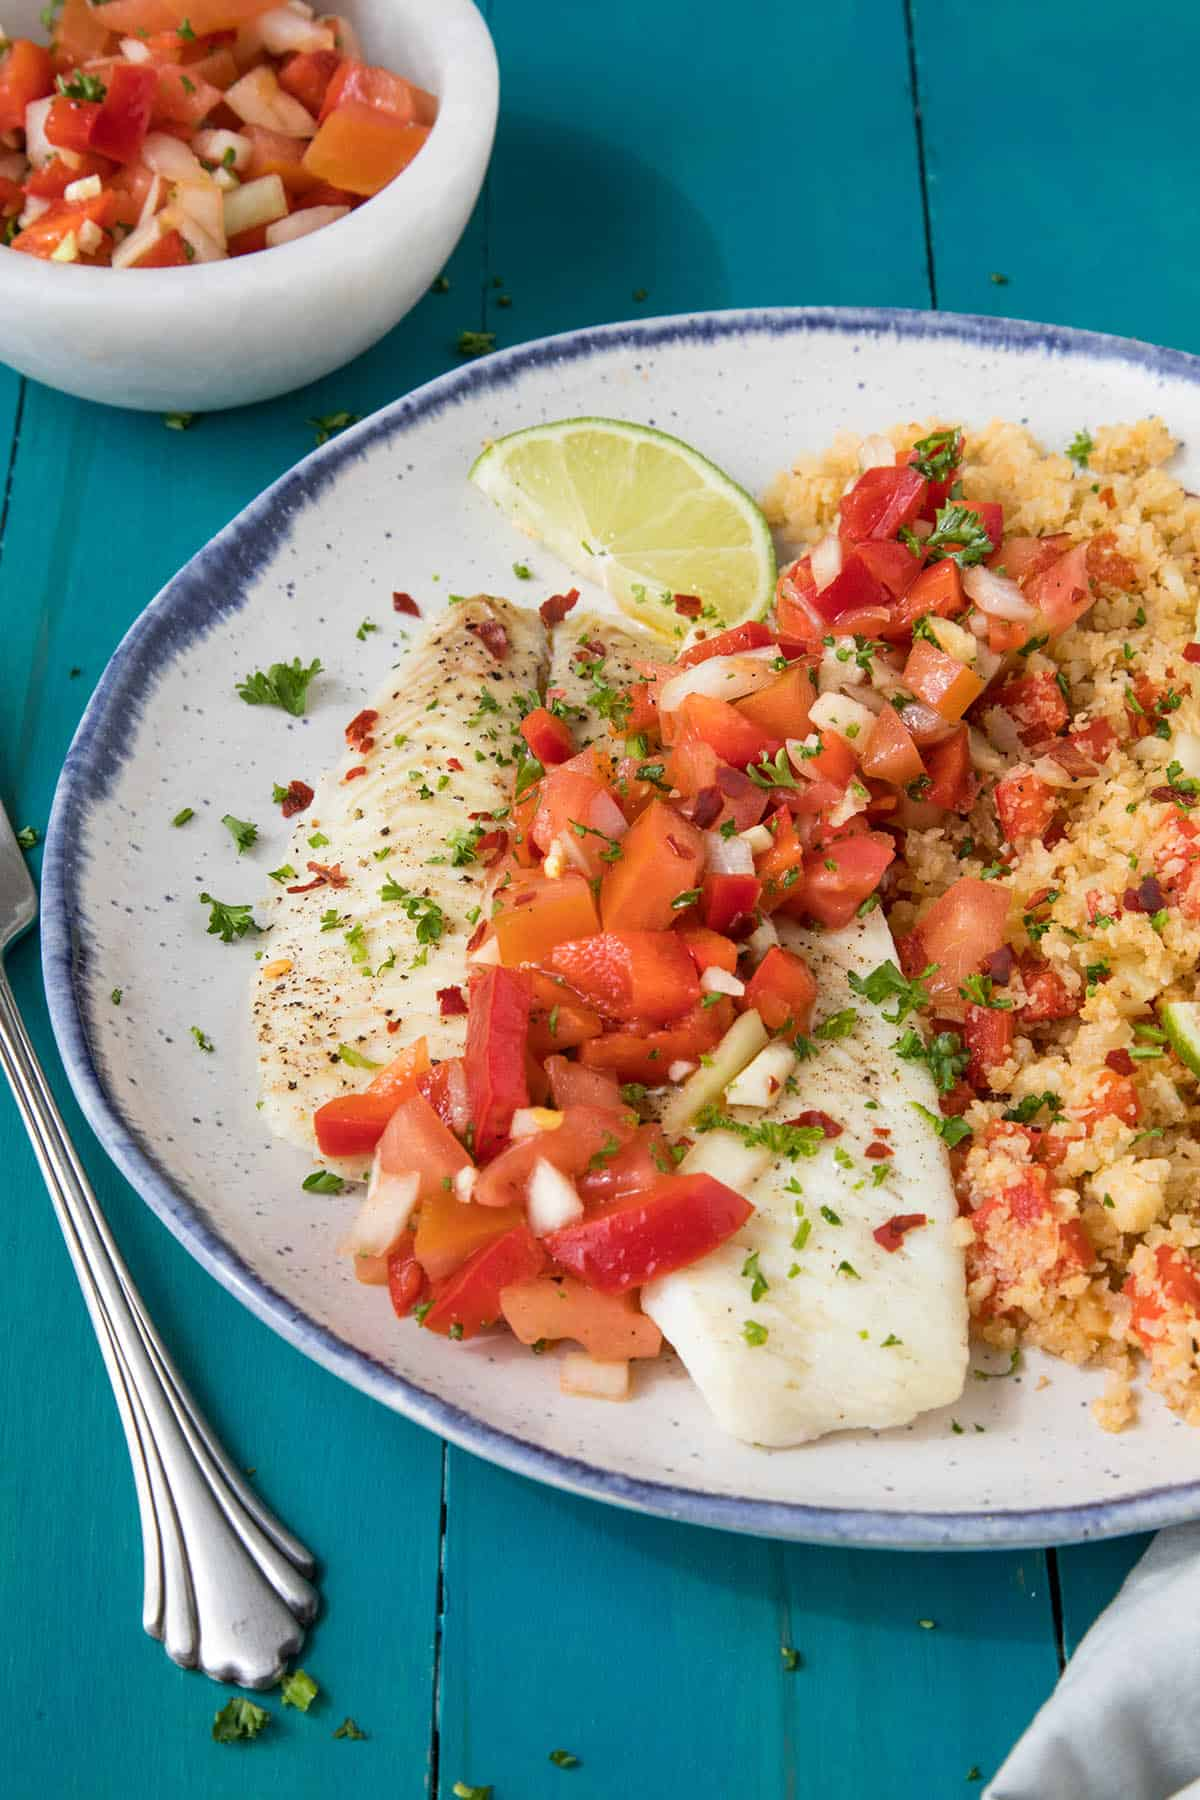 Baked Flounder with Salsa Criolla